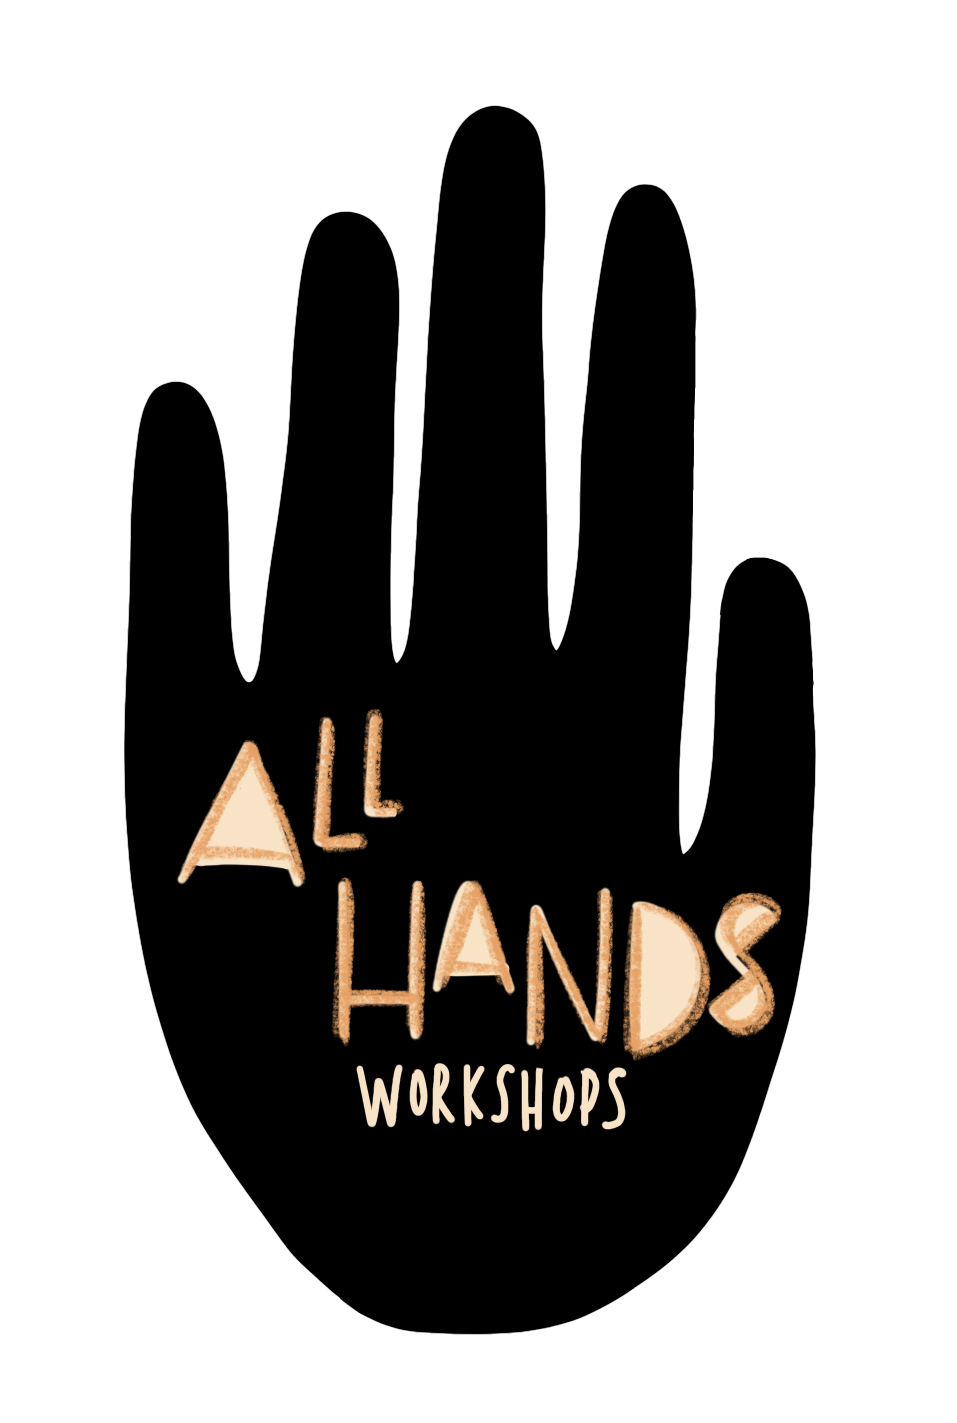 all hands manifesto - ::Our mission::The human soul craves to create beautiful objects by hand. All Hands Workshops was born of this craving and exists to build creative capacity through the teaching and learning of handcrafts, art and design.::Our values::Creativity, far from being an elusive trait, is actually a practice and a path that belongs to us all. Creativity finds its highest expression in service to humanity. All Hands strives to serve the community by being an environment in which people can experience the well-being that comes from a creative practice.::Our culture::Good craftsmanship can teach us a lot about social harmony and mutual support. When the various components of a handmade artifact or work of art all reinforce each other, we have oneness. Beautiful things - like beautiful communities - are beautiful because they have achieved this oneness - a unity in the diversity of their constituent parts.::Our hopes::In our screen-saturated society, it is a radical and responsible act to reclaim the pace of our lives and opt for genuine face-to-face connection. Our workshops aspire to offer something tangible, tactile, meditative and life-giving. They are a chance to come together and come into the present moment, in order to woo a calmer way of life that is at once centered and joyful, playful and profound.::Our name::The naming of All Hands was intentional in its nautical allusion to the crew of a ship. The dictionary definition of 'all hands' is 'everyone engaged in the same pursuit'. May the humble efforts we make with our hands prompt us to recognize that we belong to each other and that we are, in fact, in the same boat.::Our logo::The hamsa is a hand-shaped talisman that symbolizes protection in many cultures and traditions around the world. All Hands is a safe space for all.::Our motto::We believe in making.